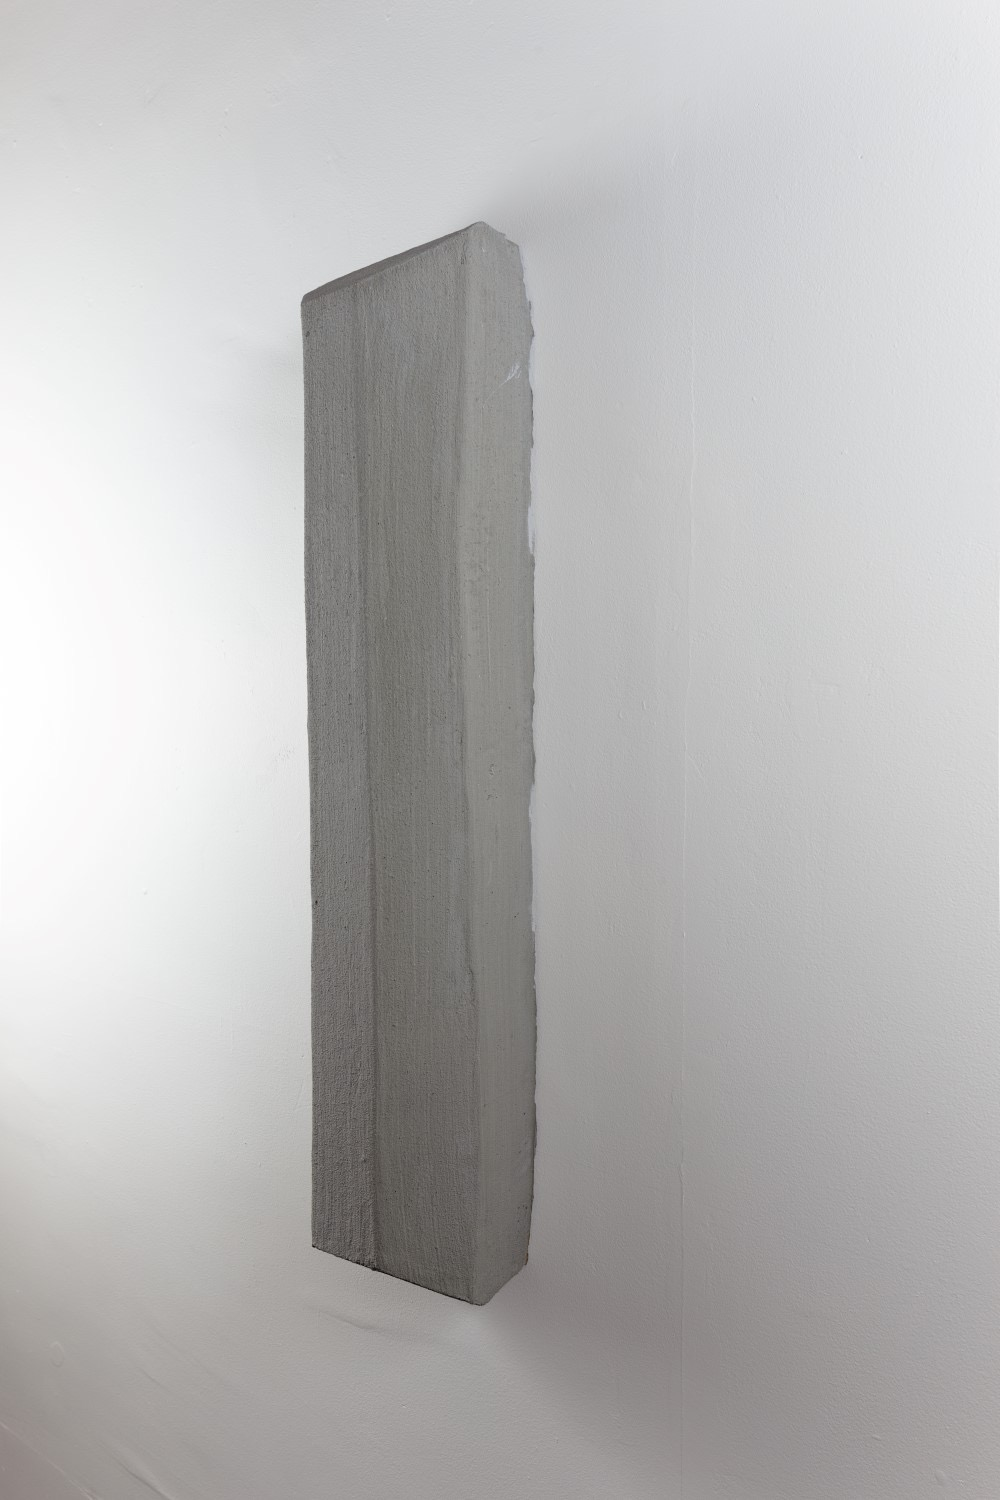 Parking Block   concrete, foam, & wood glue  36 x 6 x 6  2016